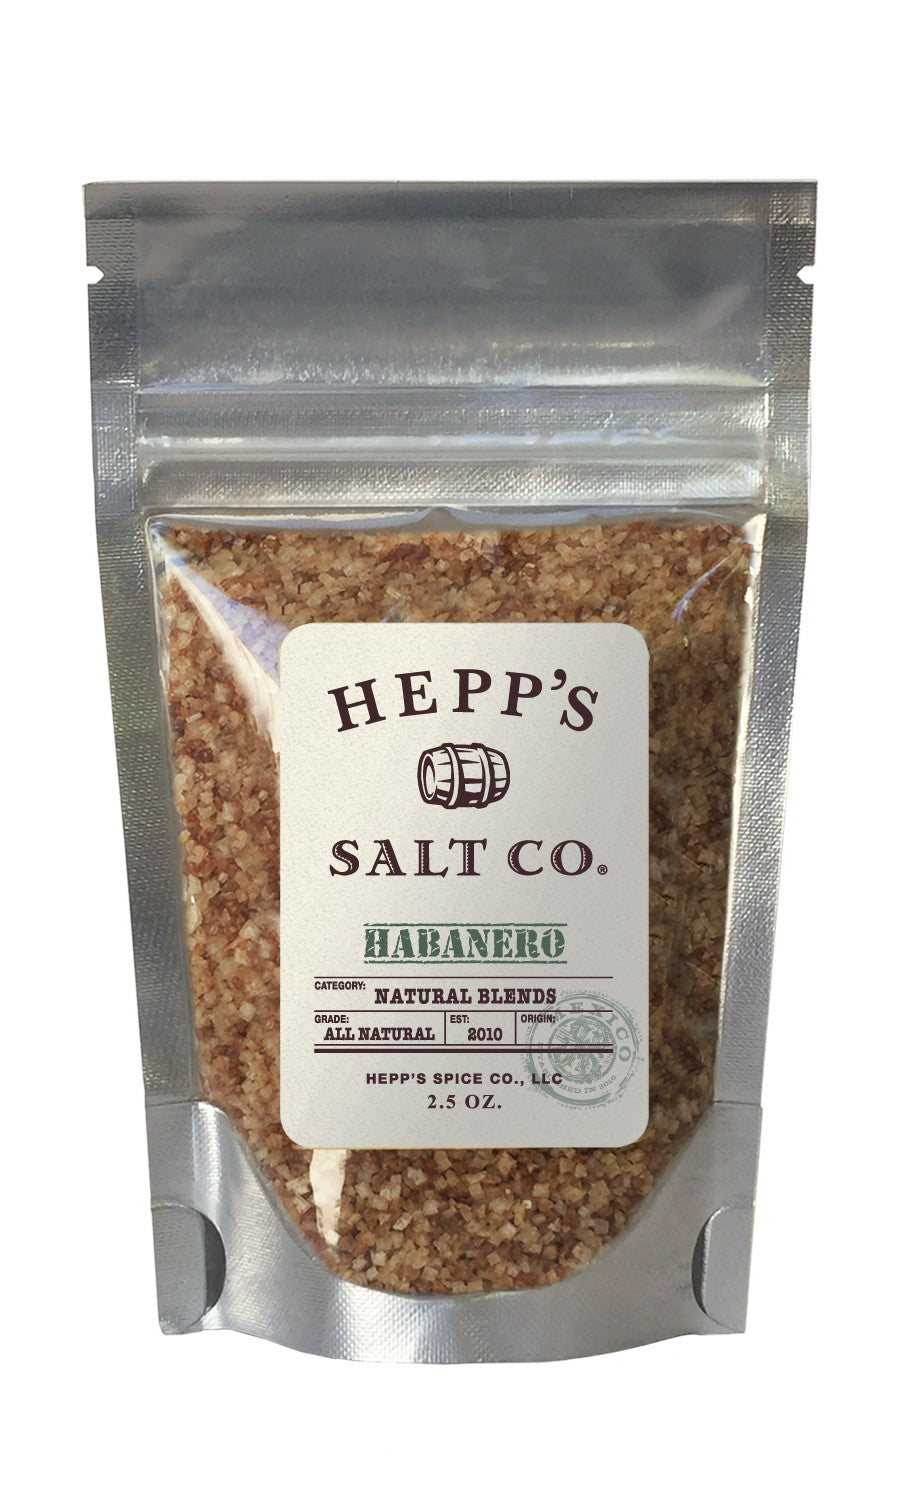 Habanero Sea Salt - HEPPS SALT CO.